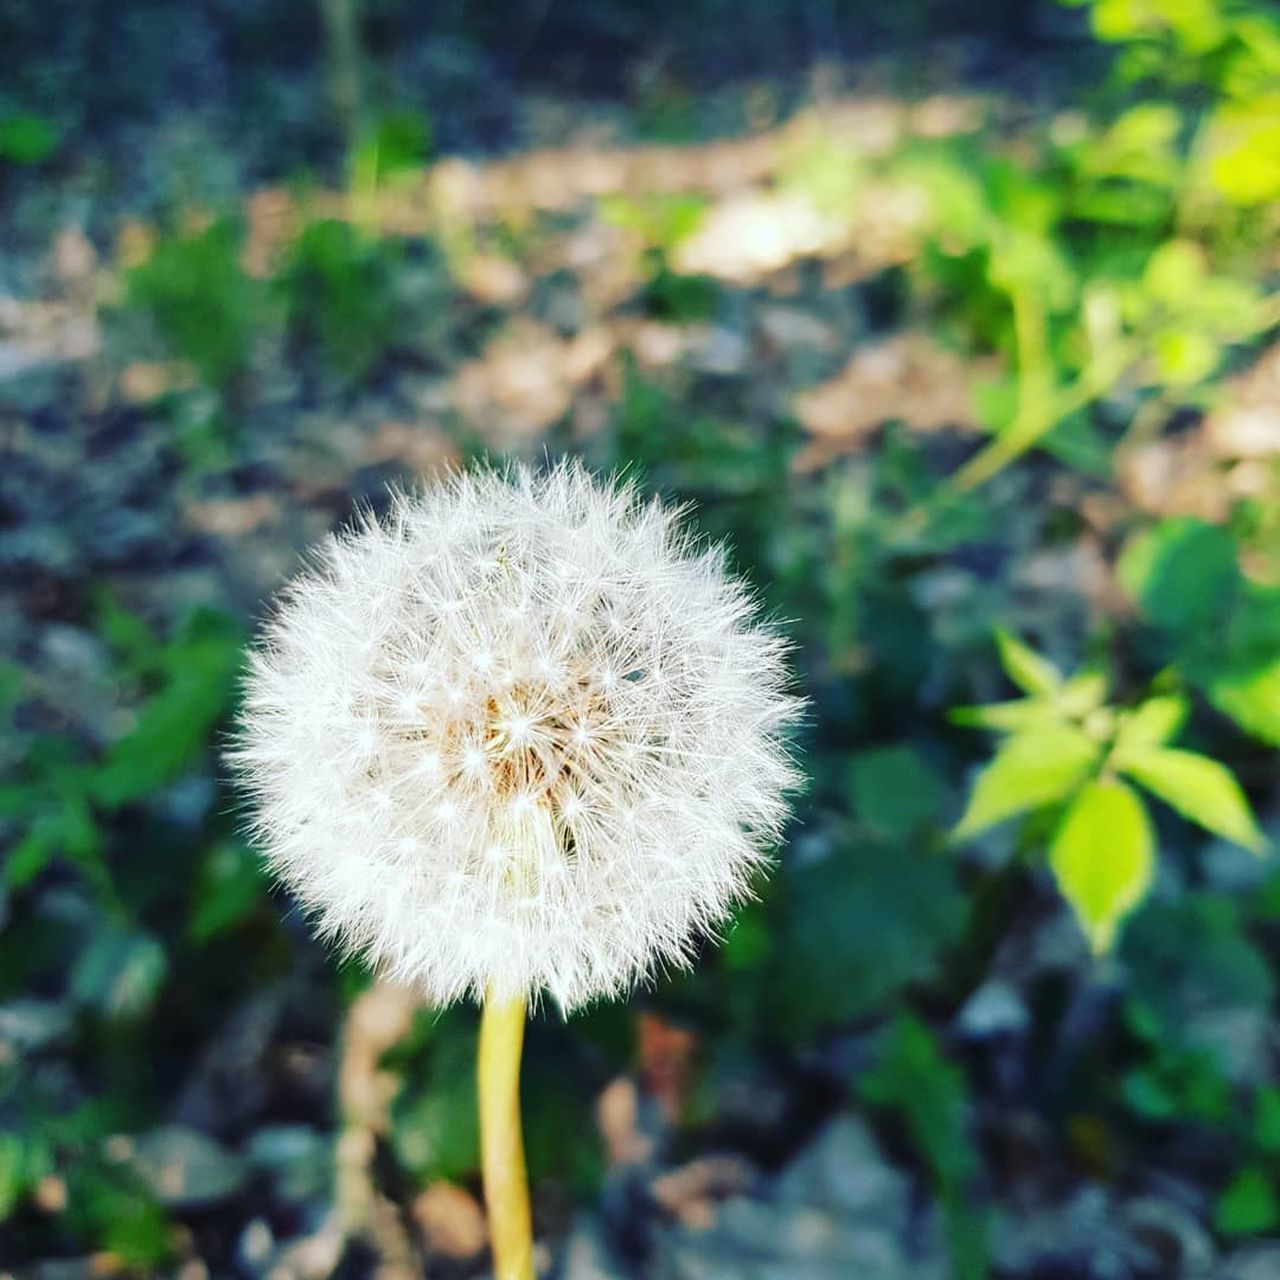 plant, flower, flowering plant, freshness, fragility, dandelion, vulnerability, close-up, beauty in nature, growth, nature, flower head, inflorescence, focus on foreground, day, no people, white color, uncultivated, land, outdoors, softness, dandelion seed